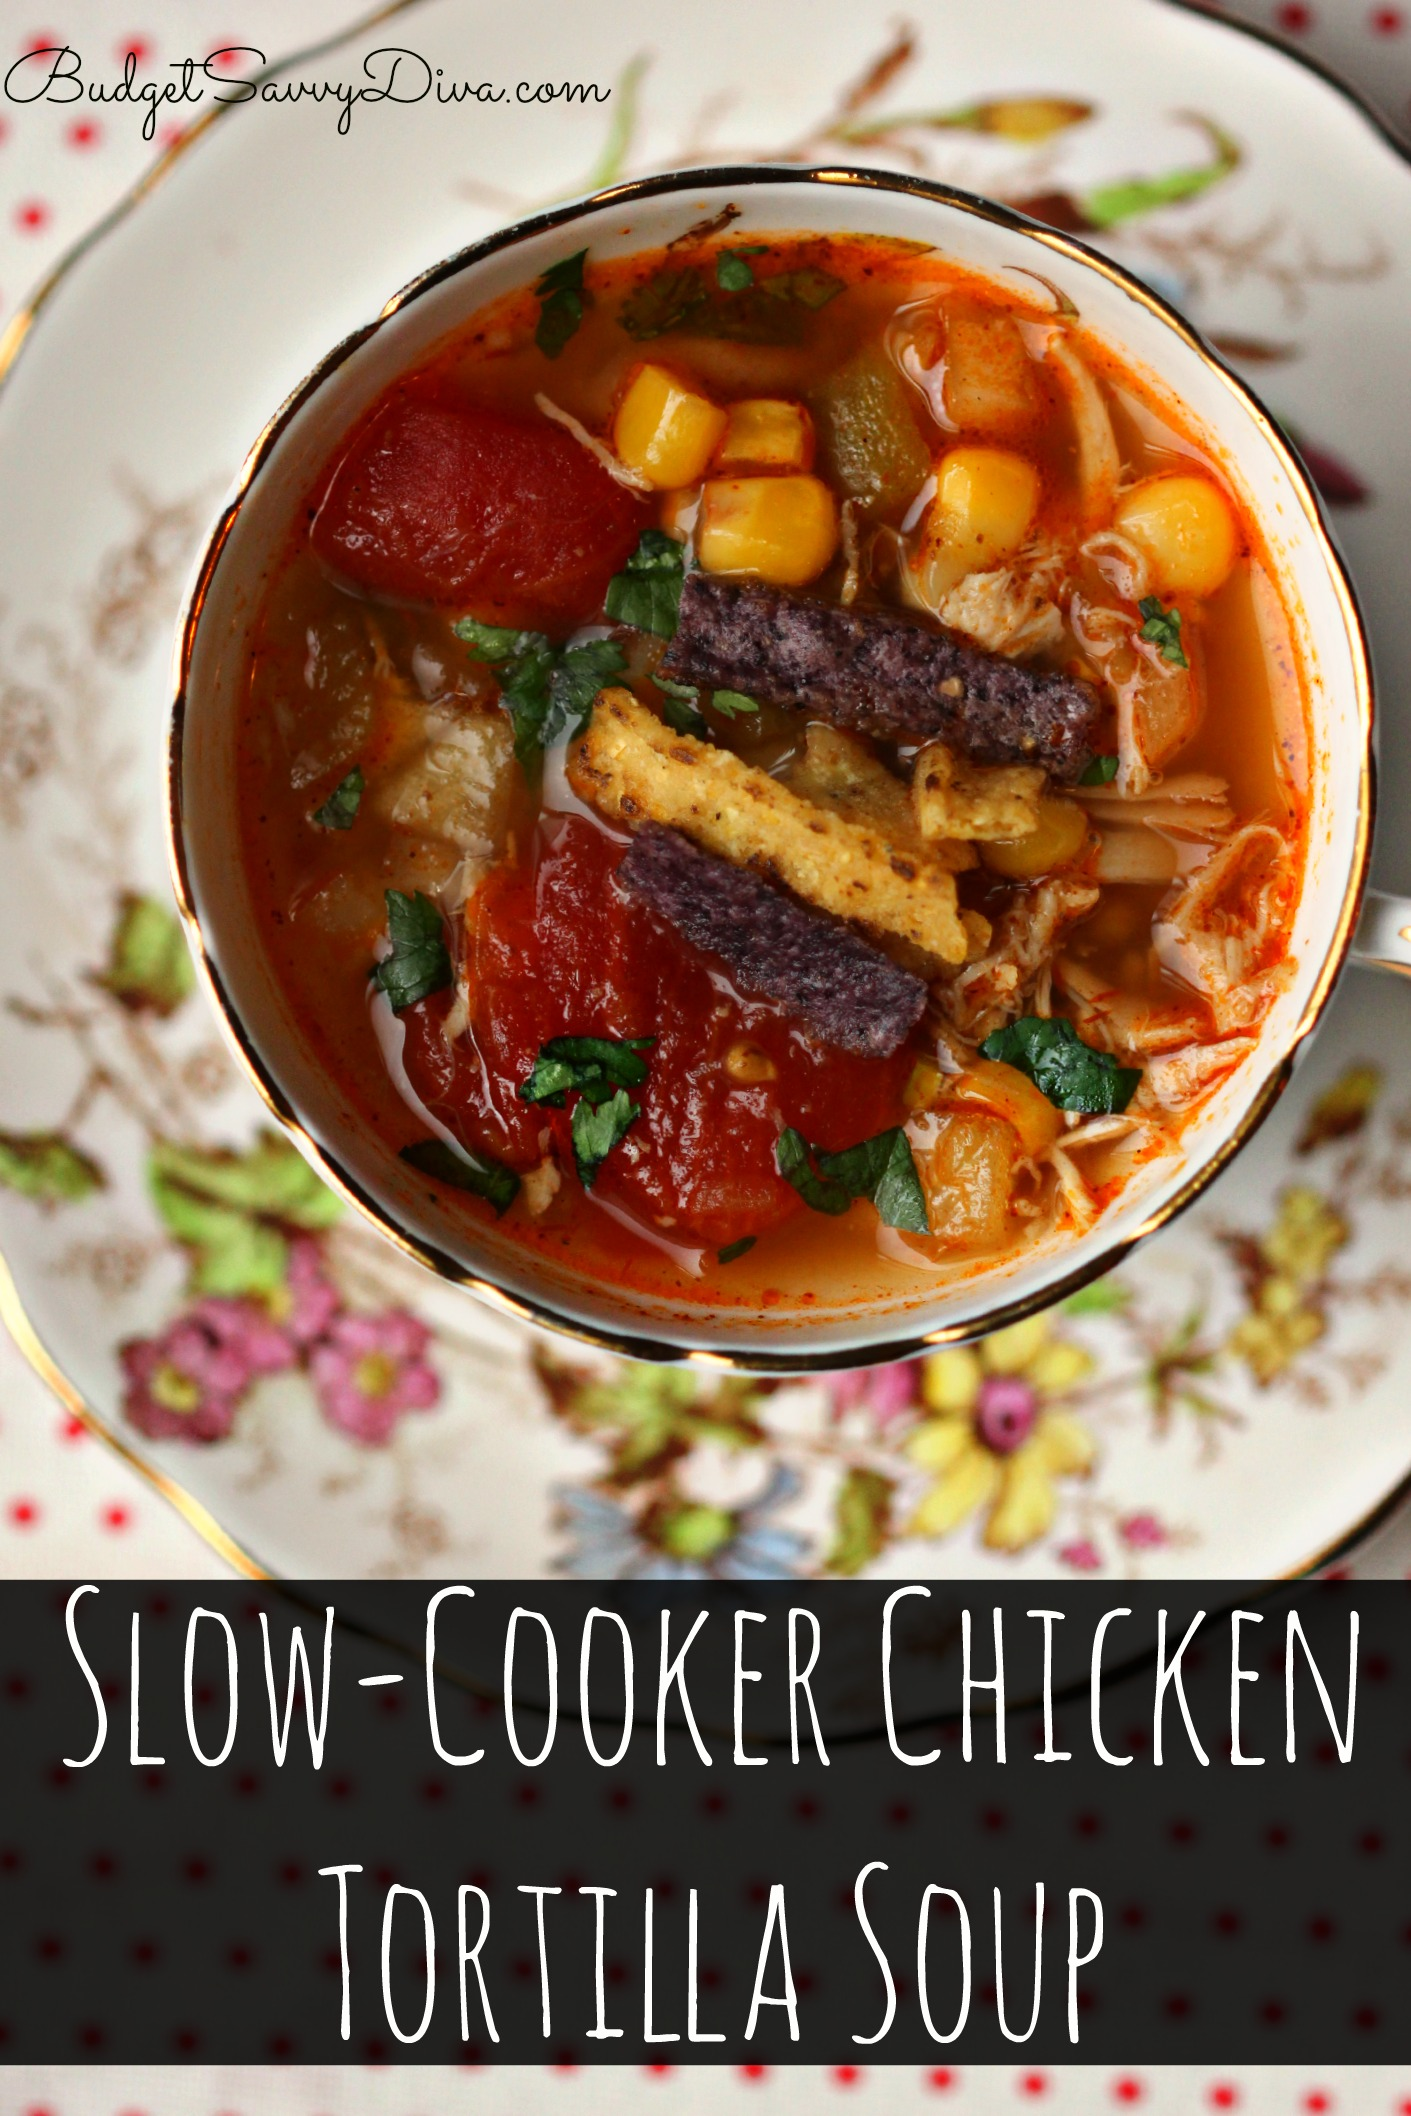 Slow Cooker Chicken Tortilla Soup Recipe Budget Savvy Diva